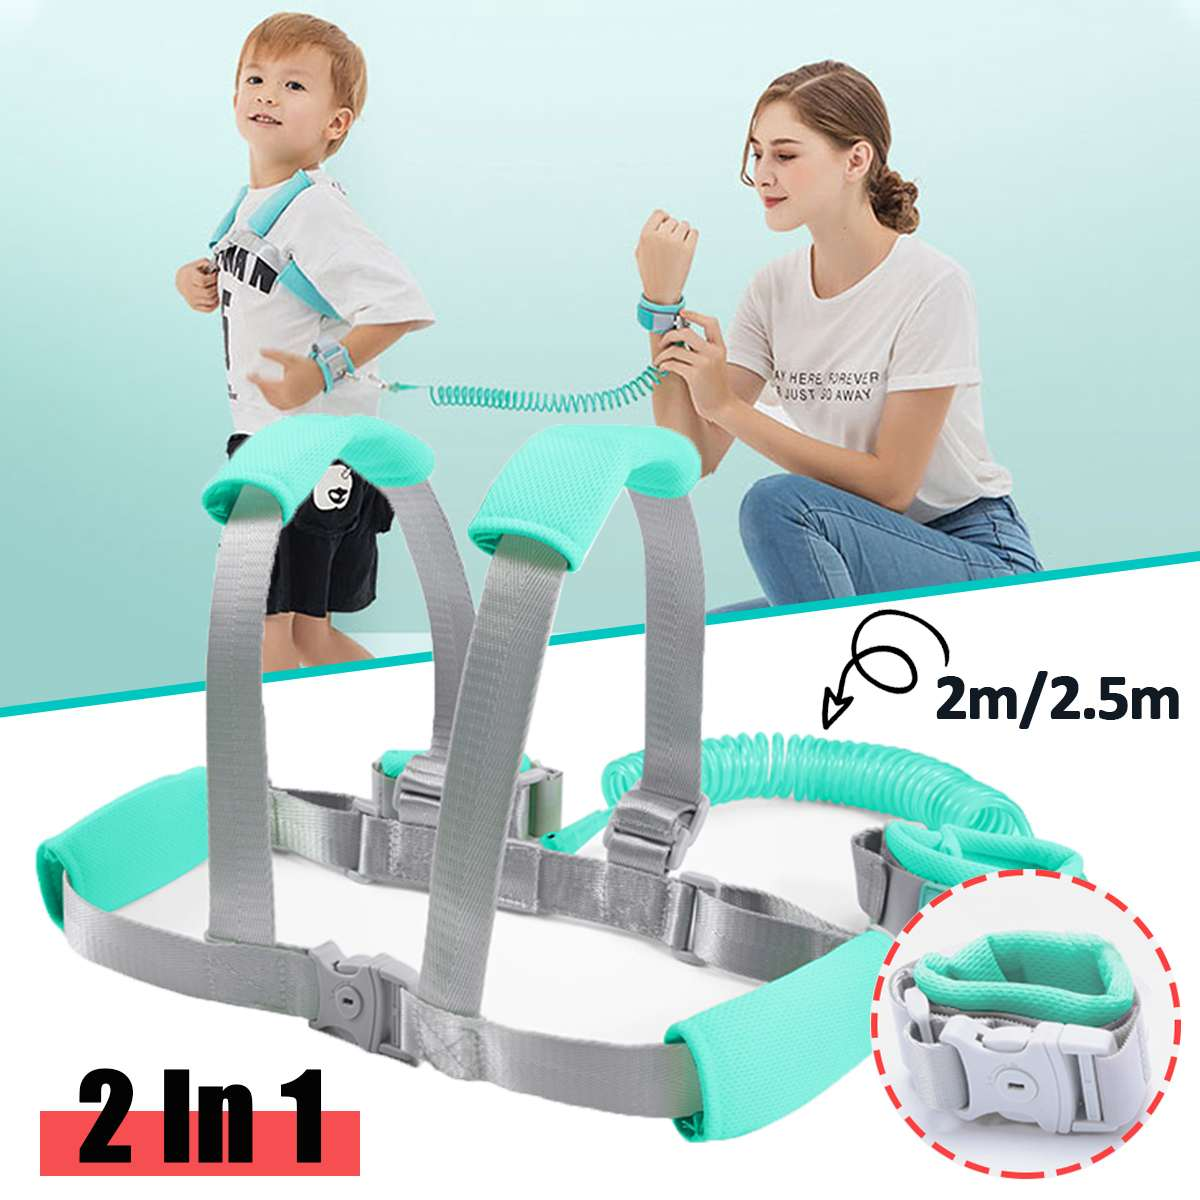 Baby Kid TODDLER SAFETY HARNESS REFLECTIVE Learning Walk Assistant Walking Reins